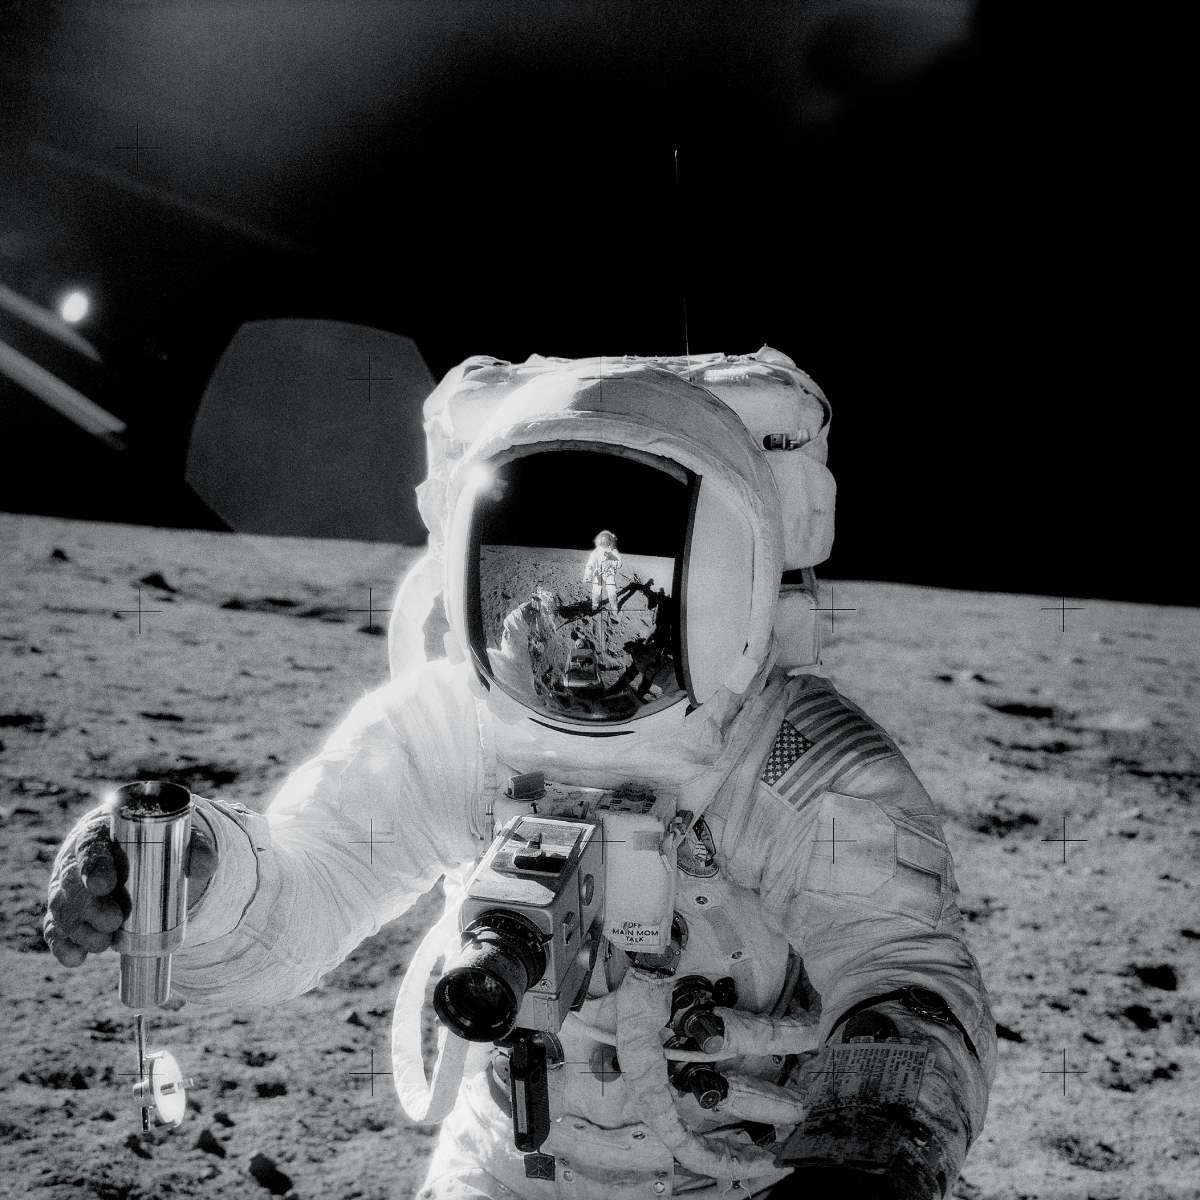 Alan Bean on the moon during the Apollo 12 mission